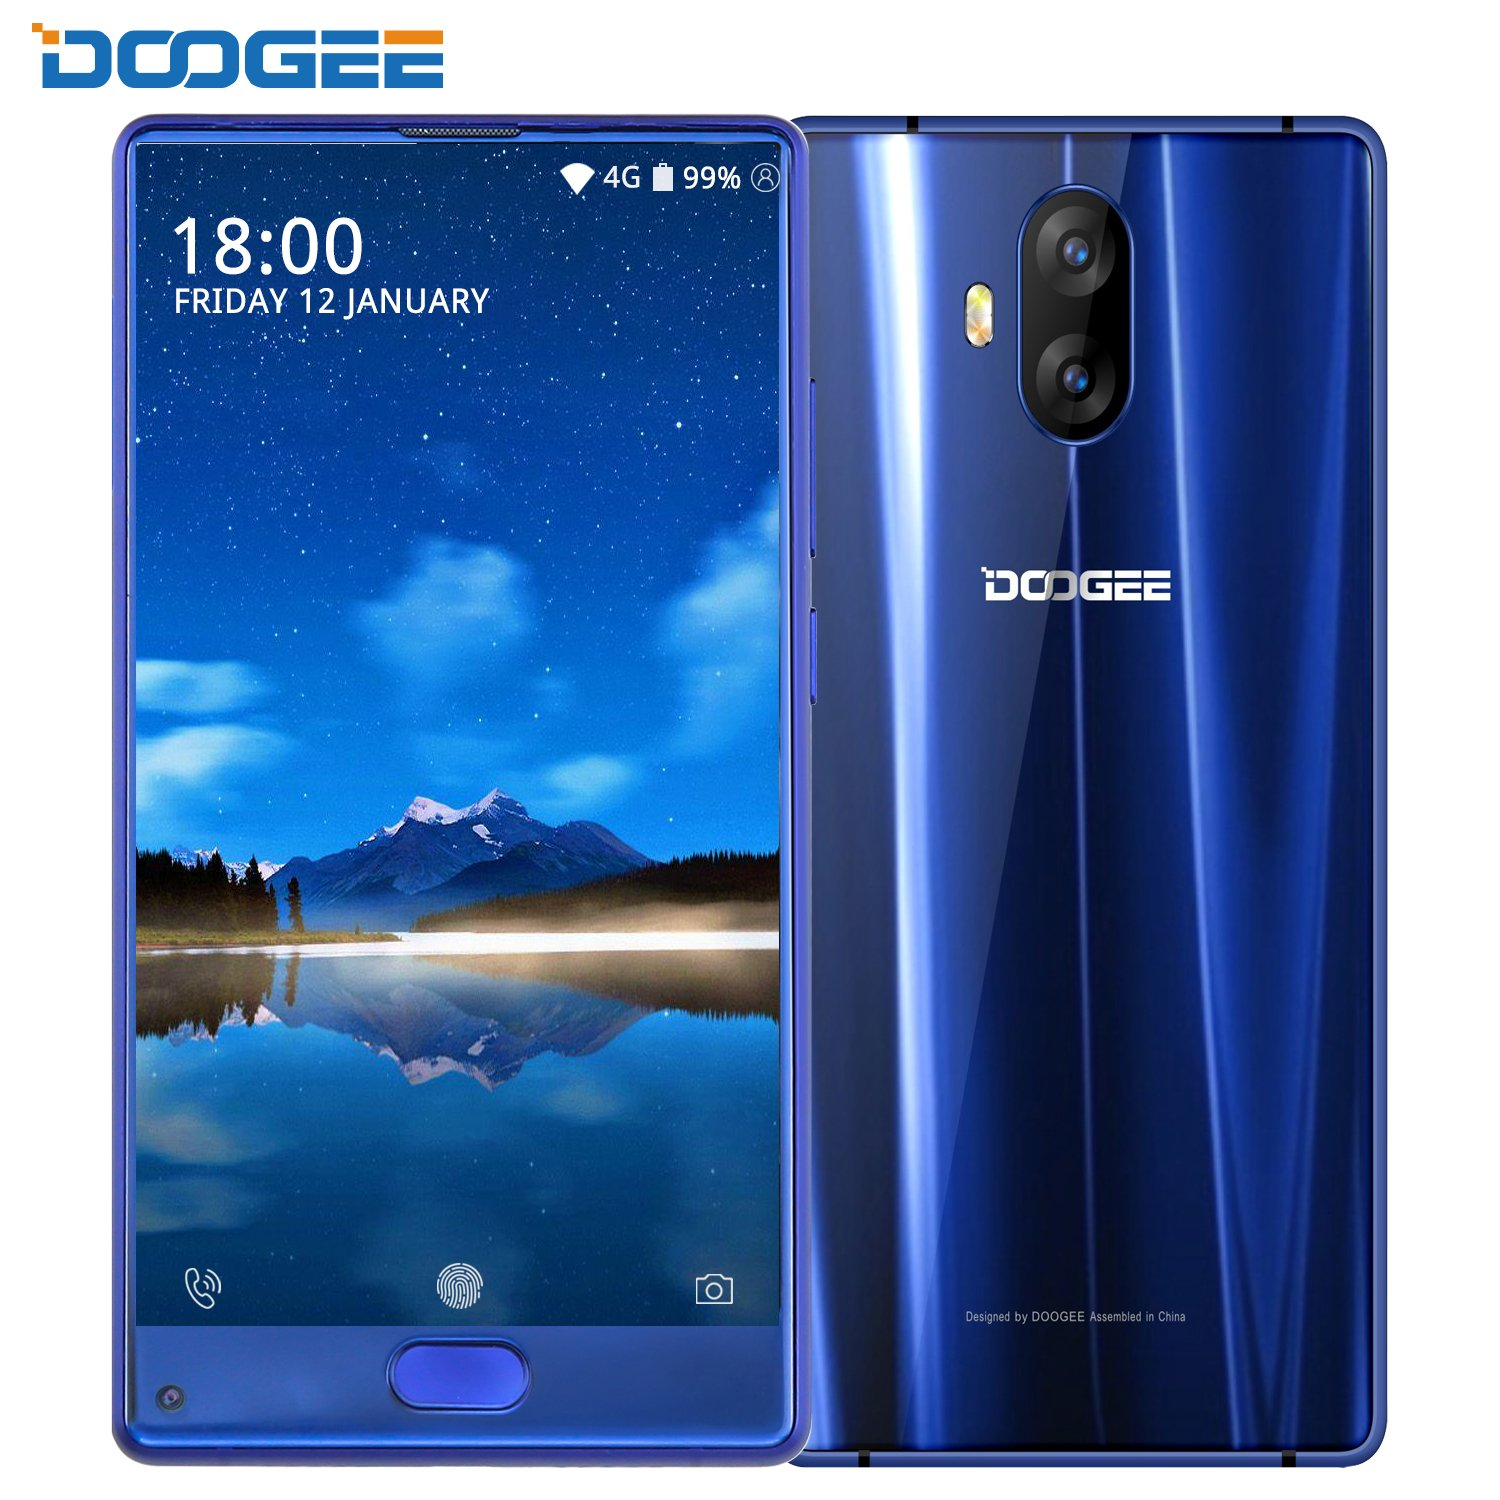 Cellulare SIM Free, DOOGEE Mix Lite 4G Smartphone